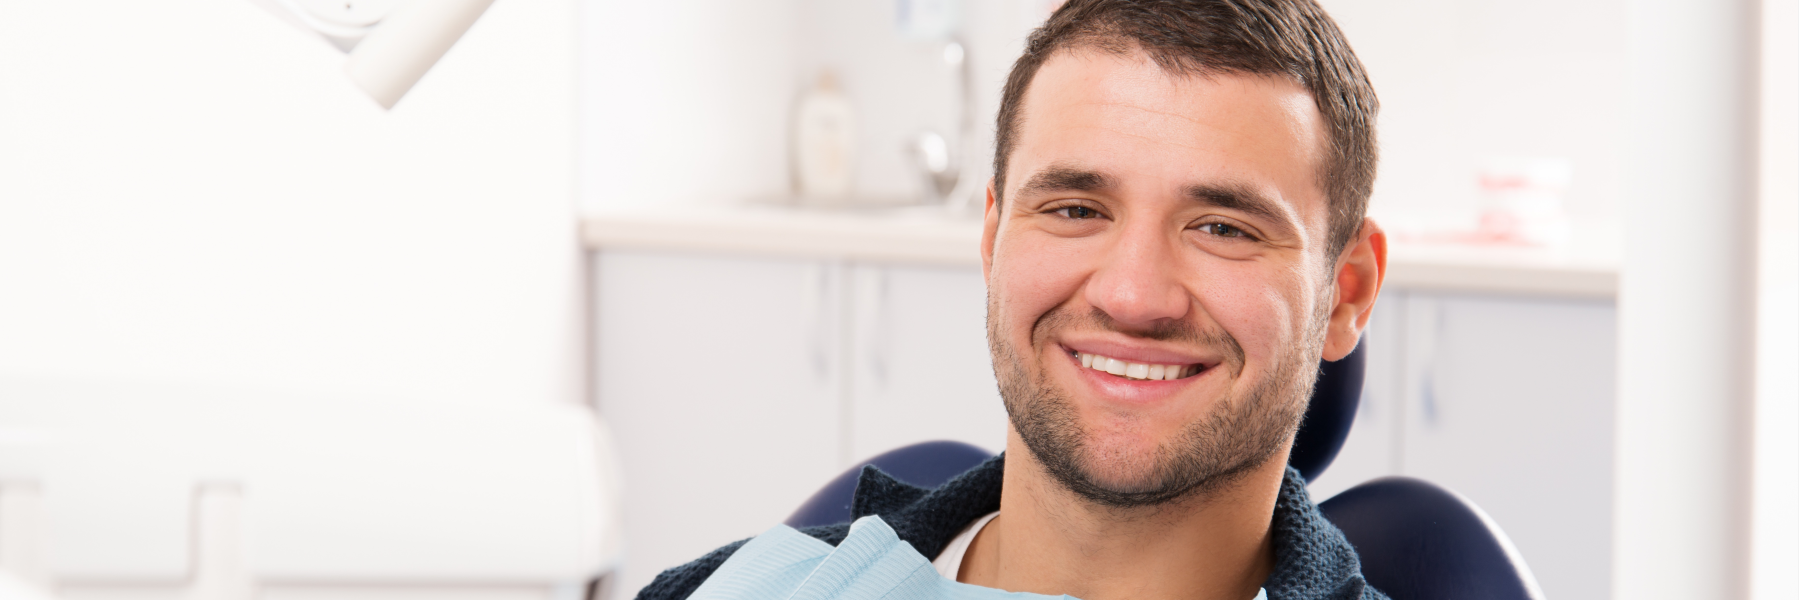 Dental Cleanings in south Riding, VA